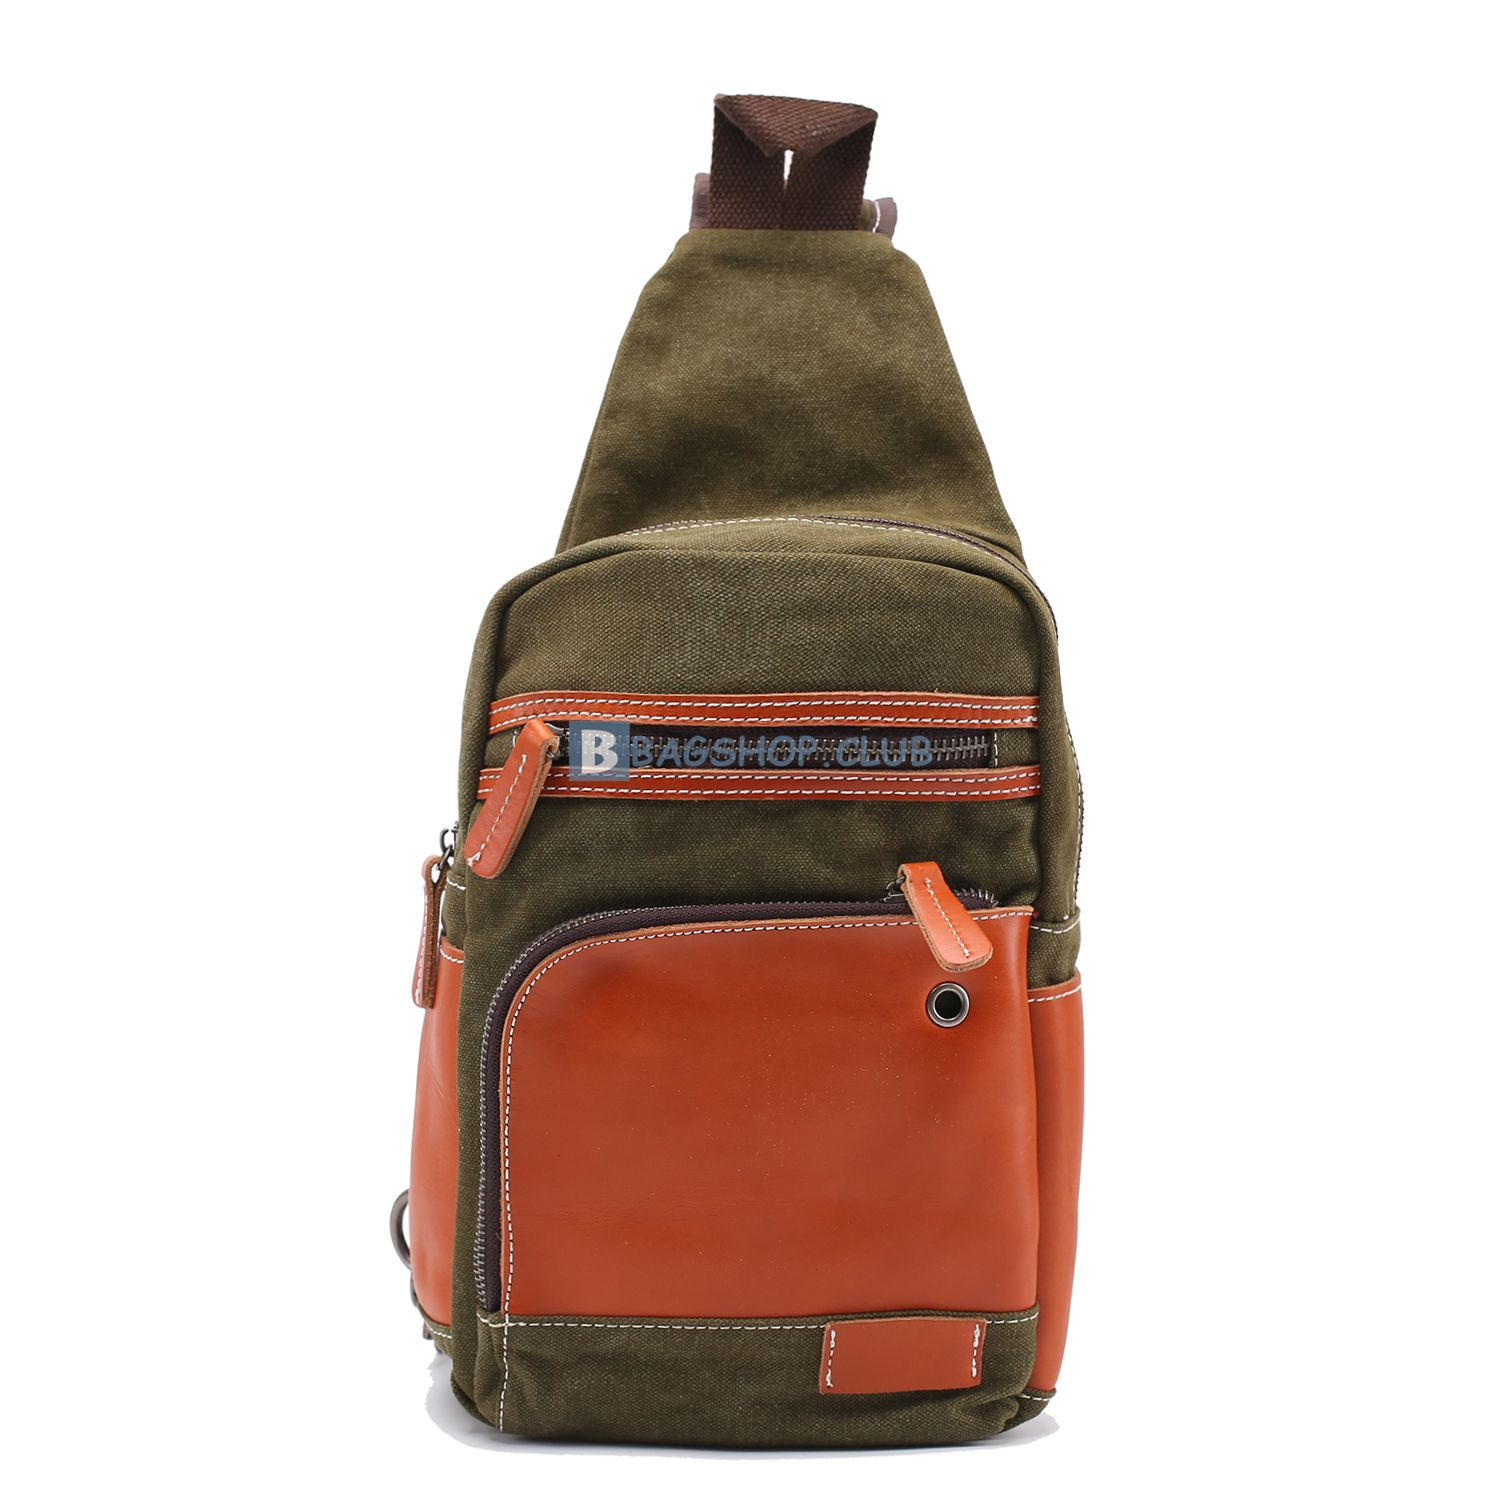 Mens Sling Bag Backpack Men Sling Bag